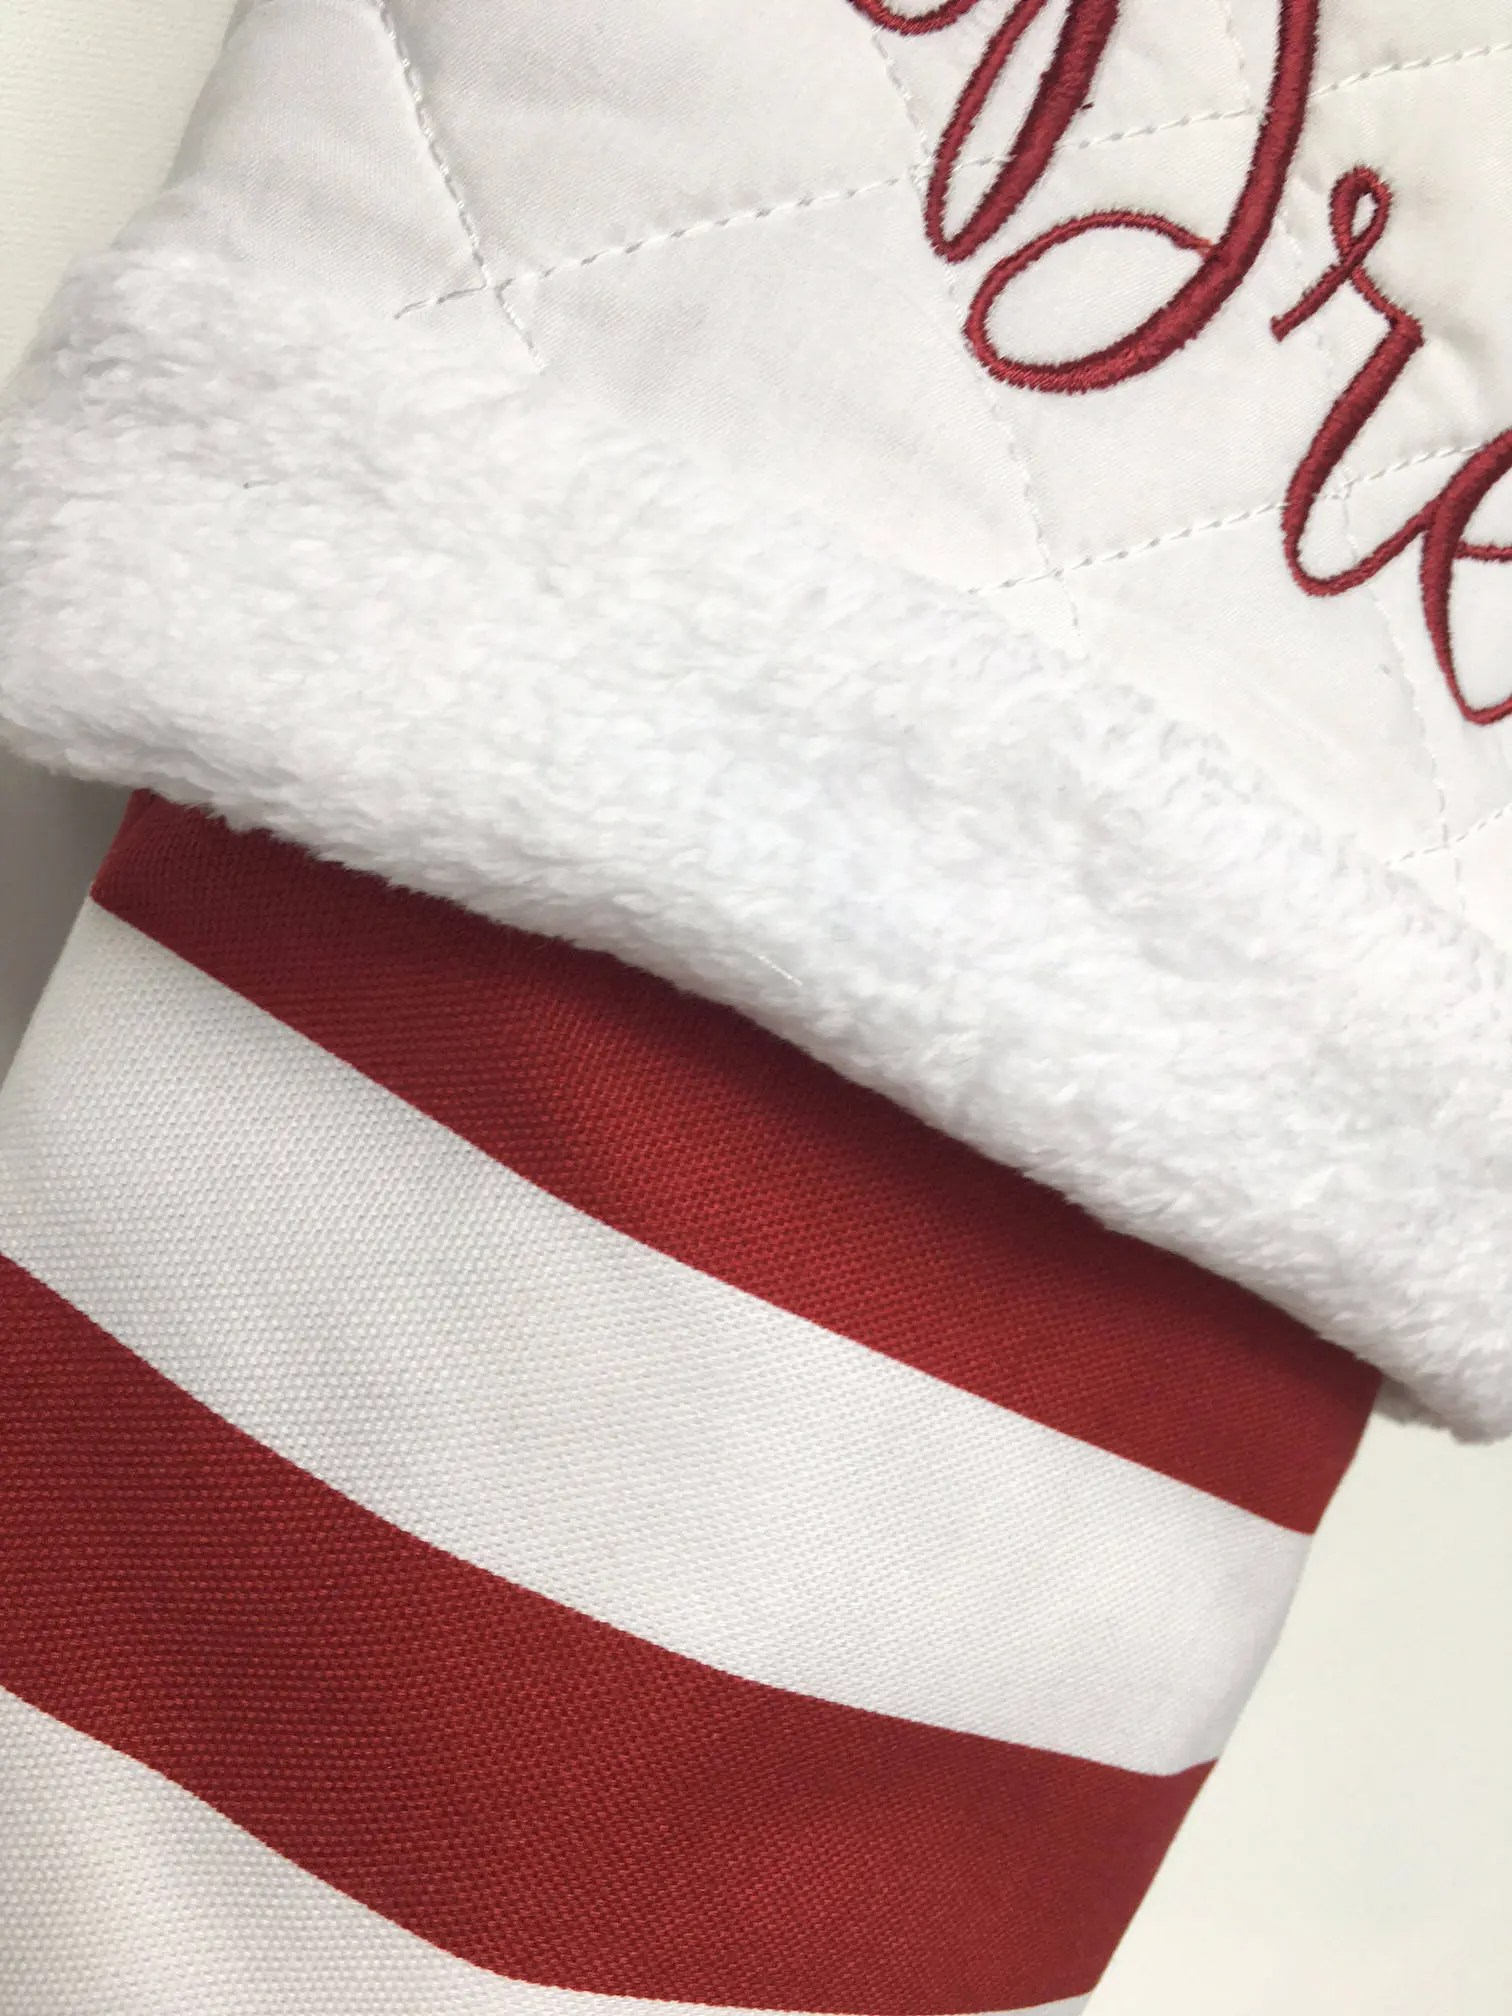 Red and White Stripes  Personalized Christmas Stockings  image 1